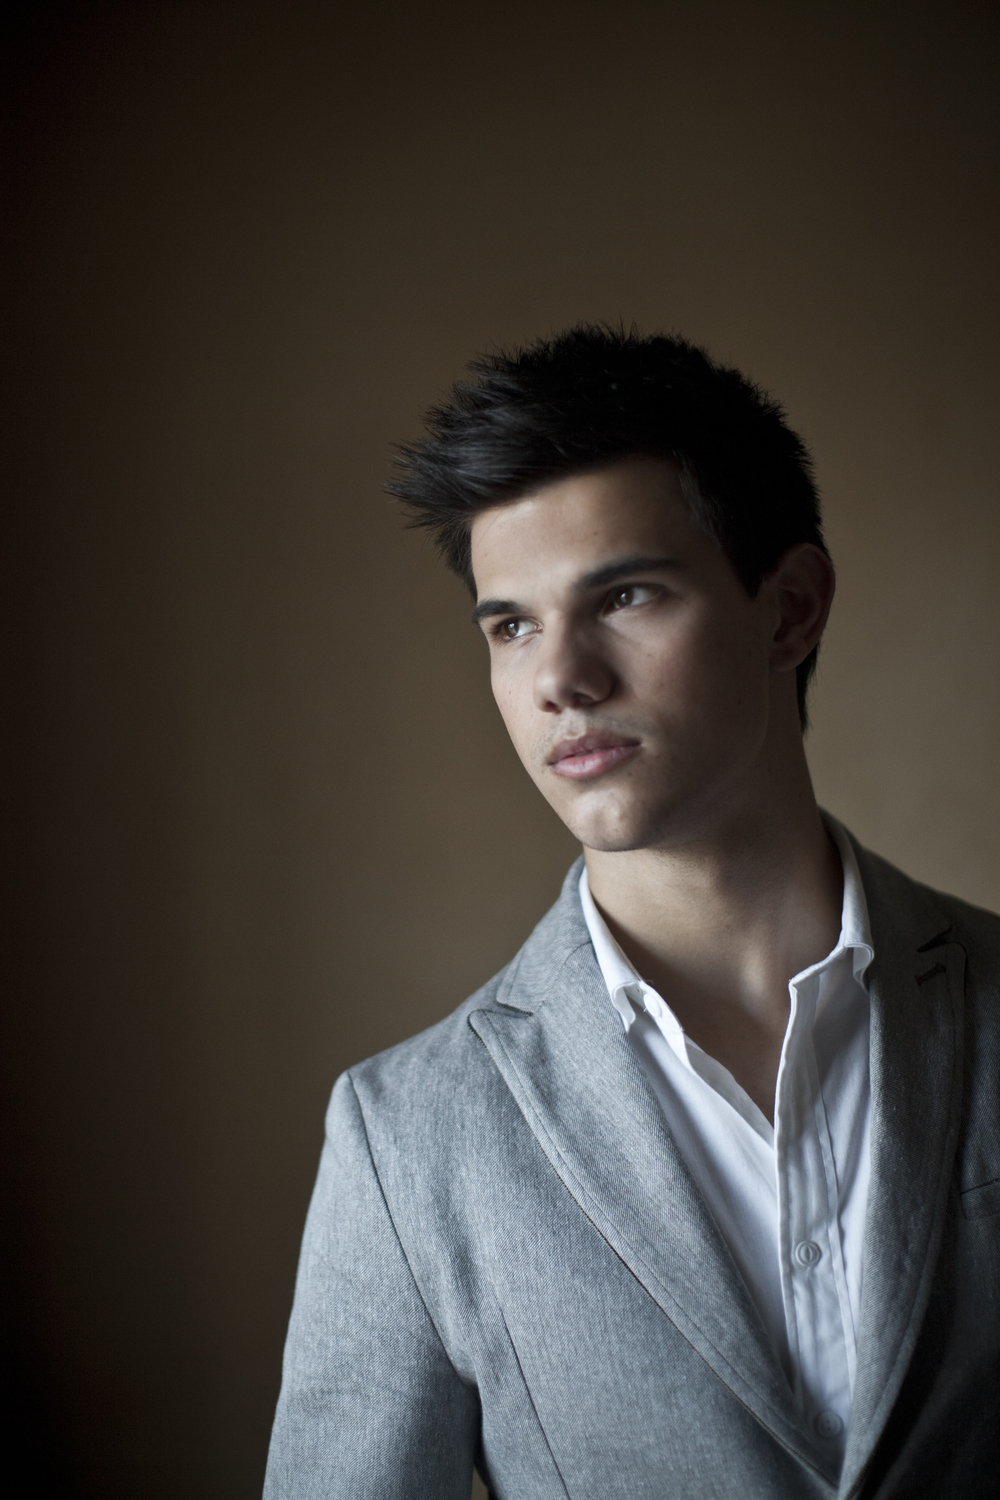 Taylor Lautner - Actor